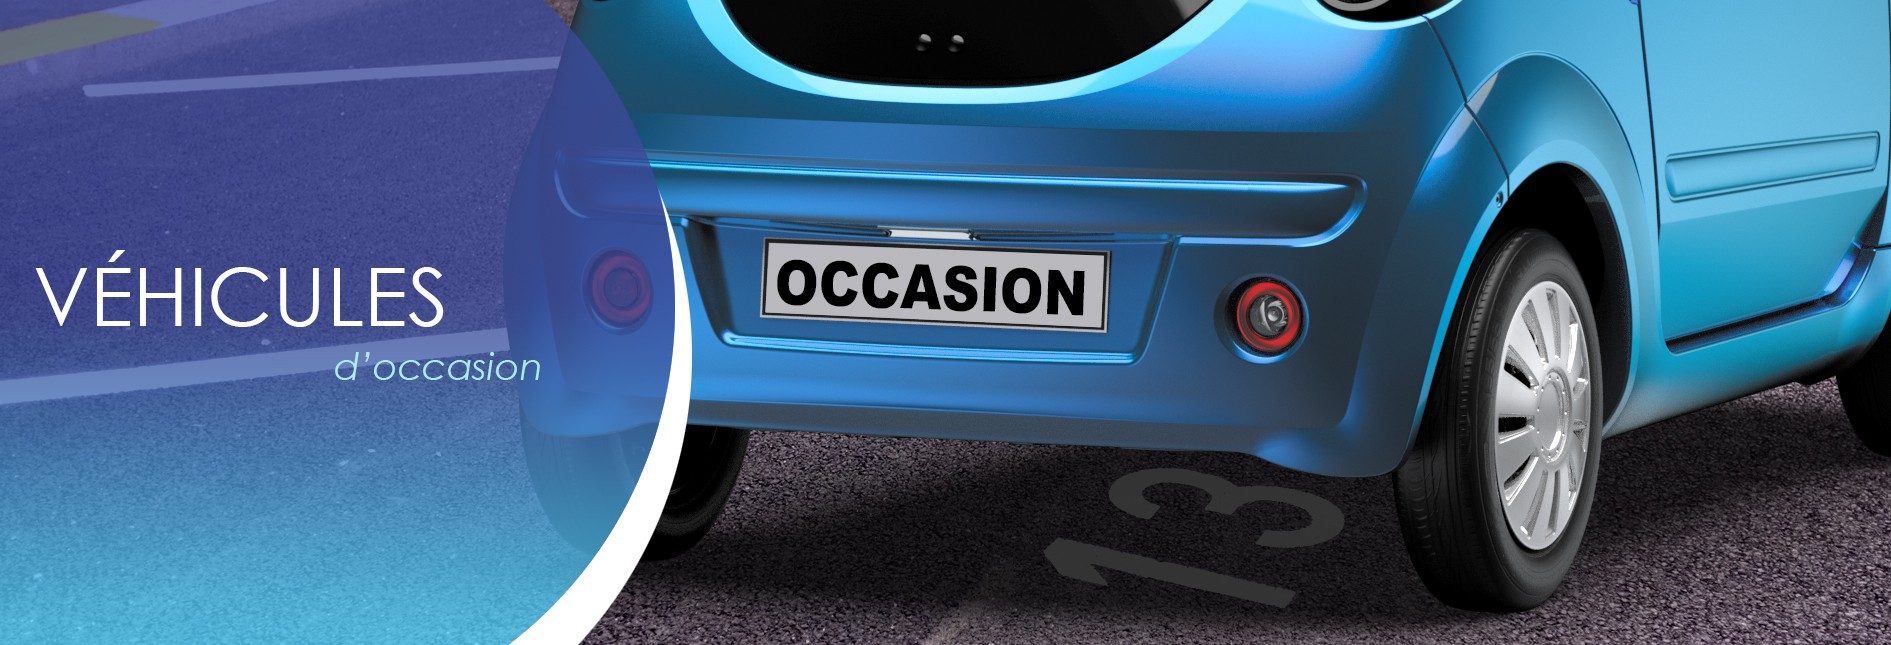 VEHICULES D'OCCASION